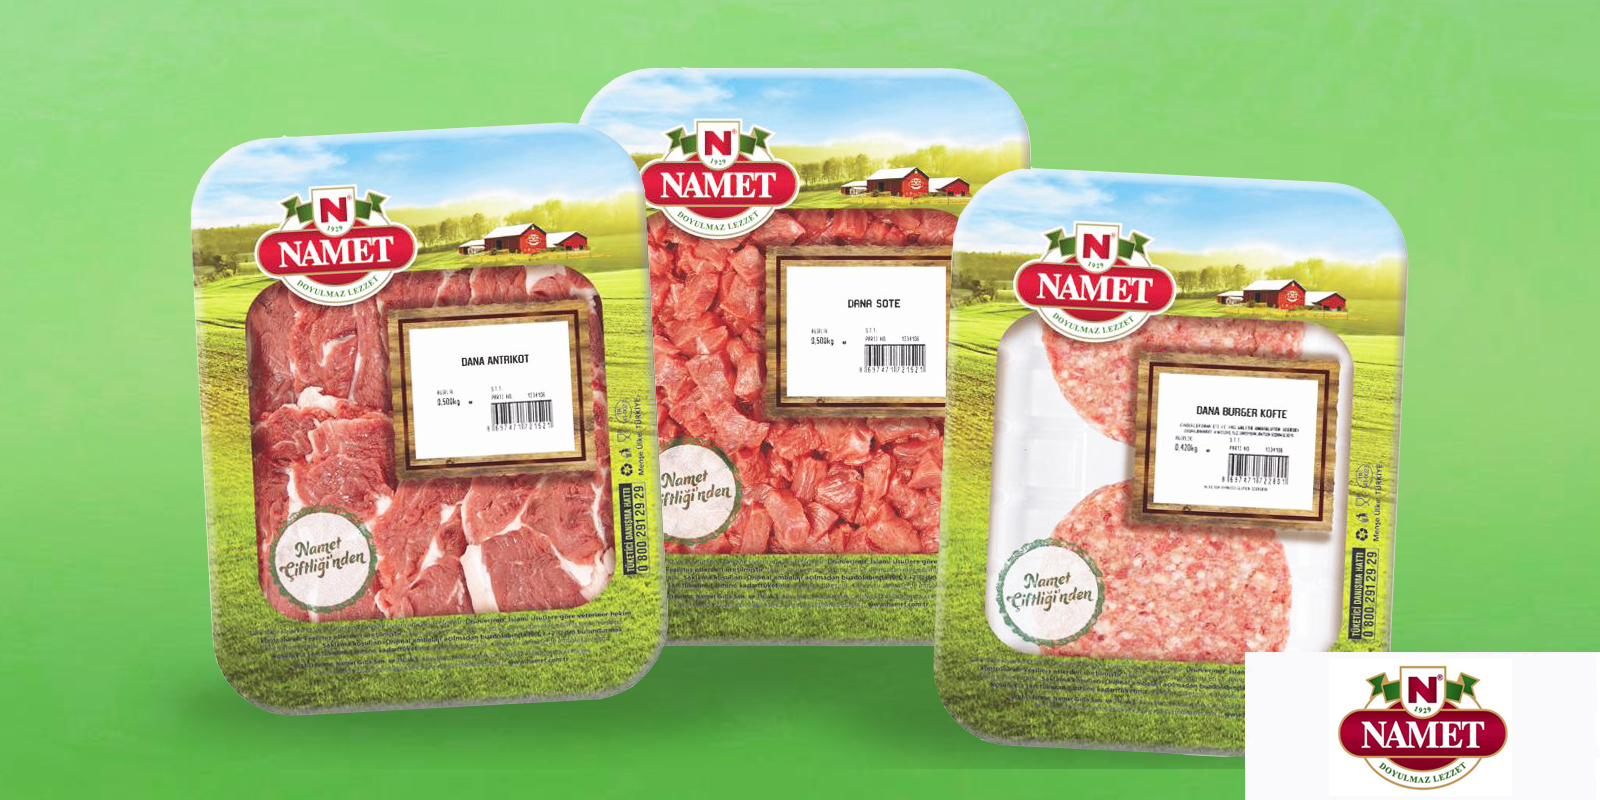 Namet the need of a packaging, to keep the record